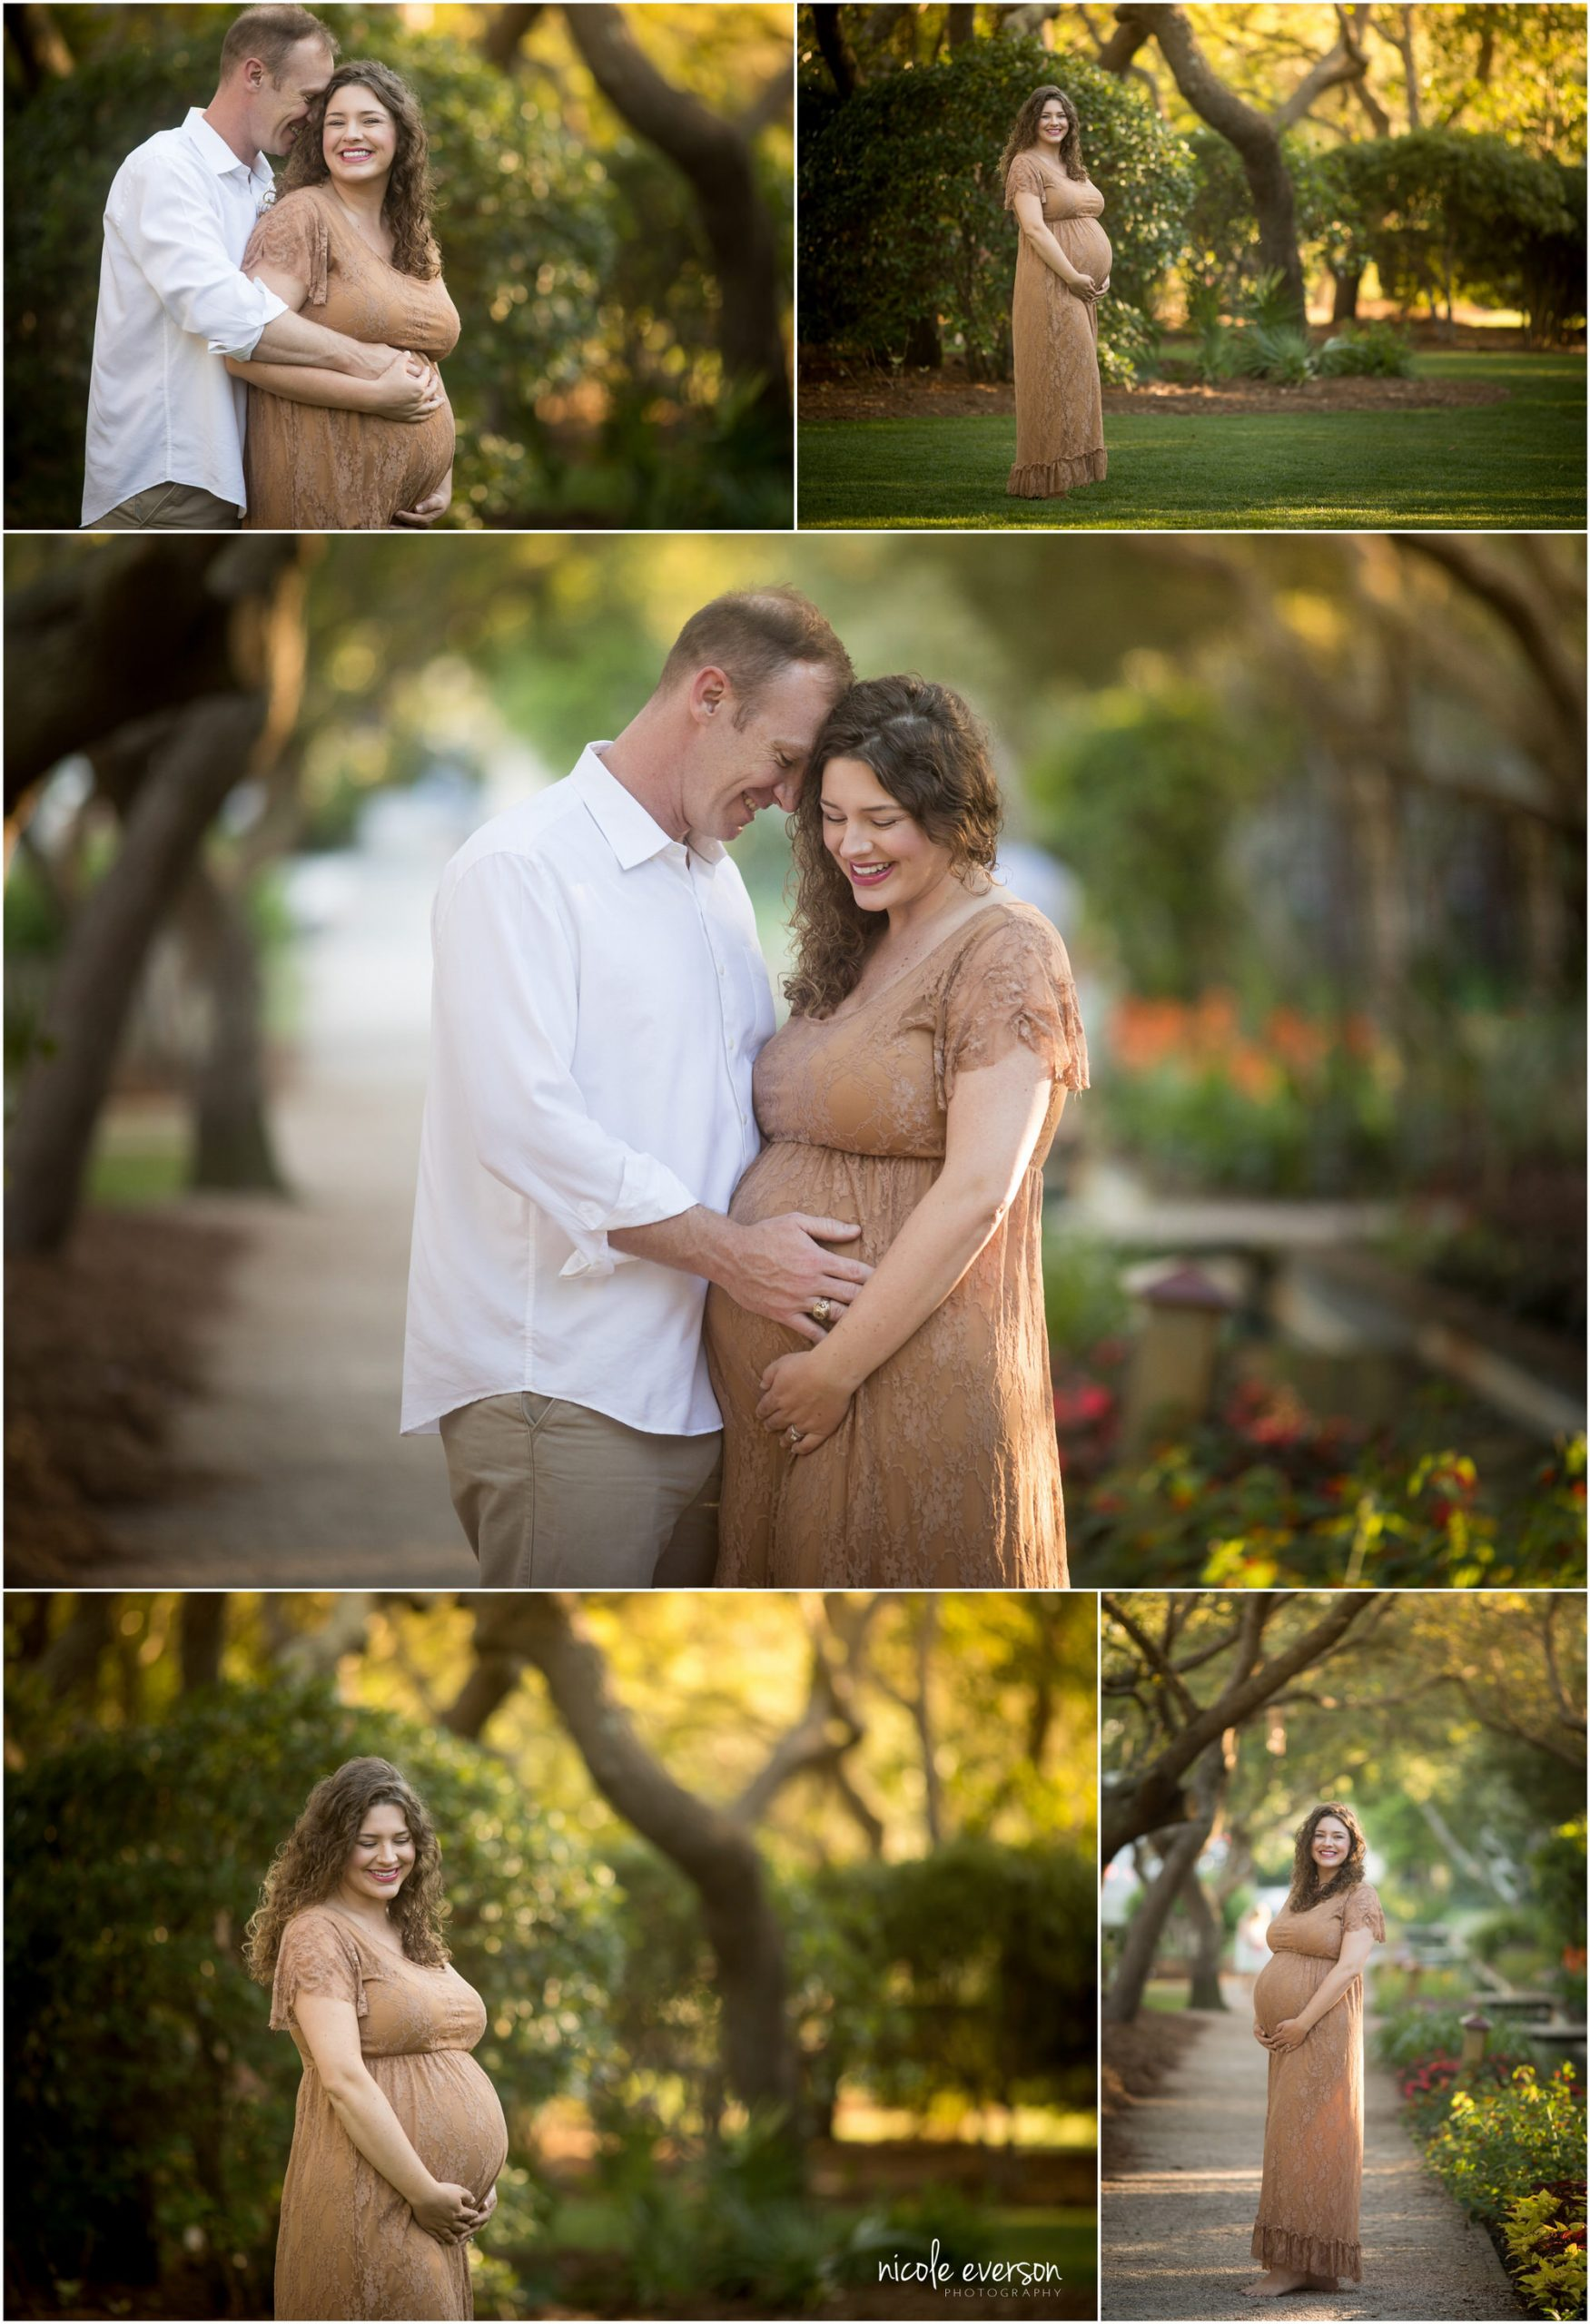 Watercolor photographer. Maternity photographers near me. Watercolor gardens maternity sessions.